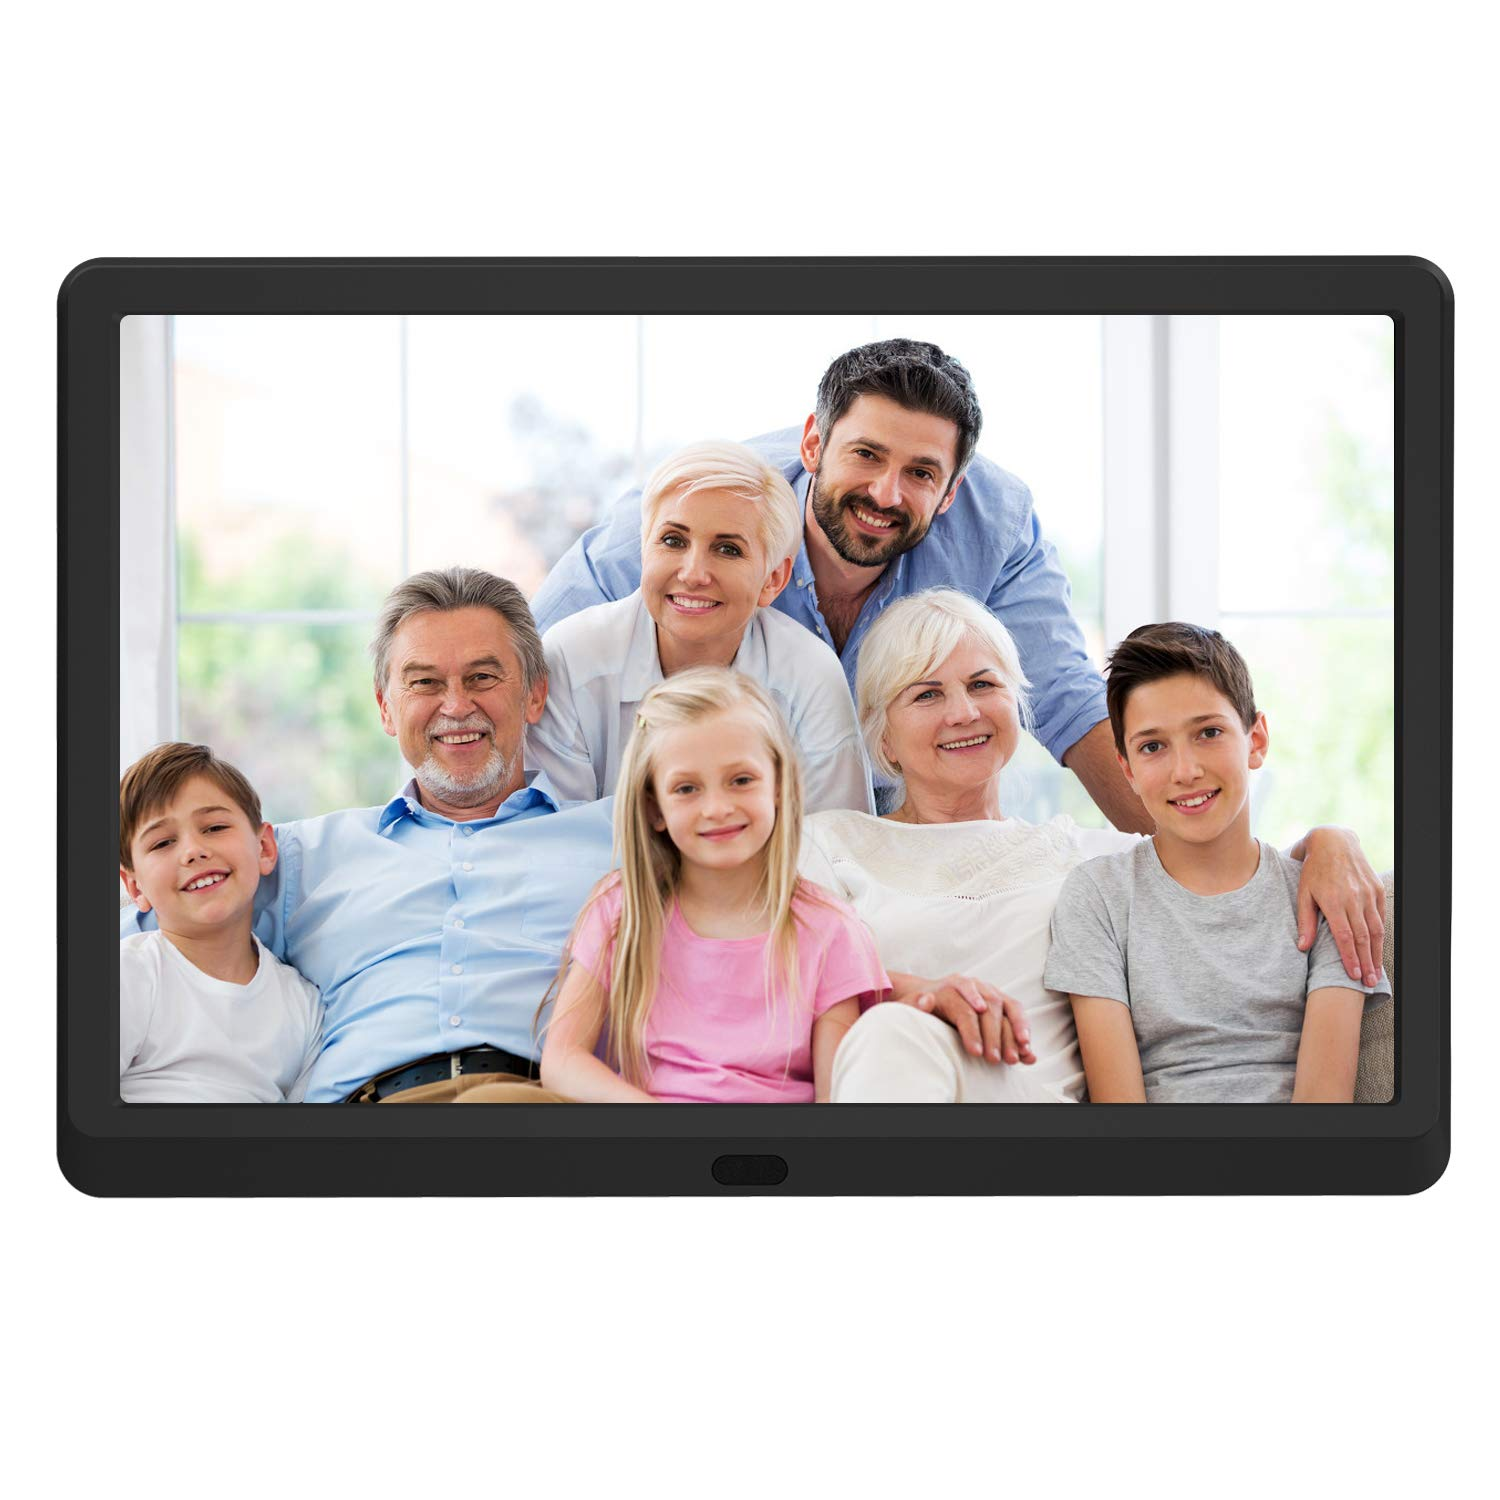 10 inch Digital Picture Frame with 1920x1080 IPS Screen Digital Photo Frame Adjustable Brightness, Photo Deletion, Timing Power On/Off, Background Music Support 1080P Video, SD Card and USB by Atatat